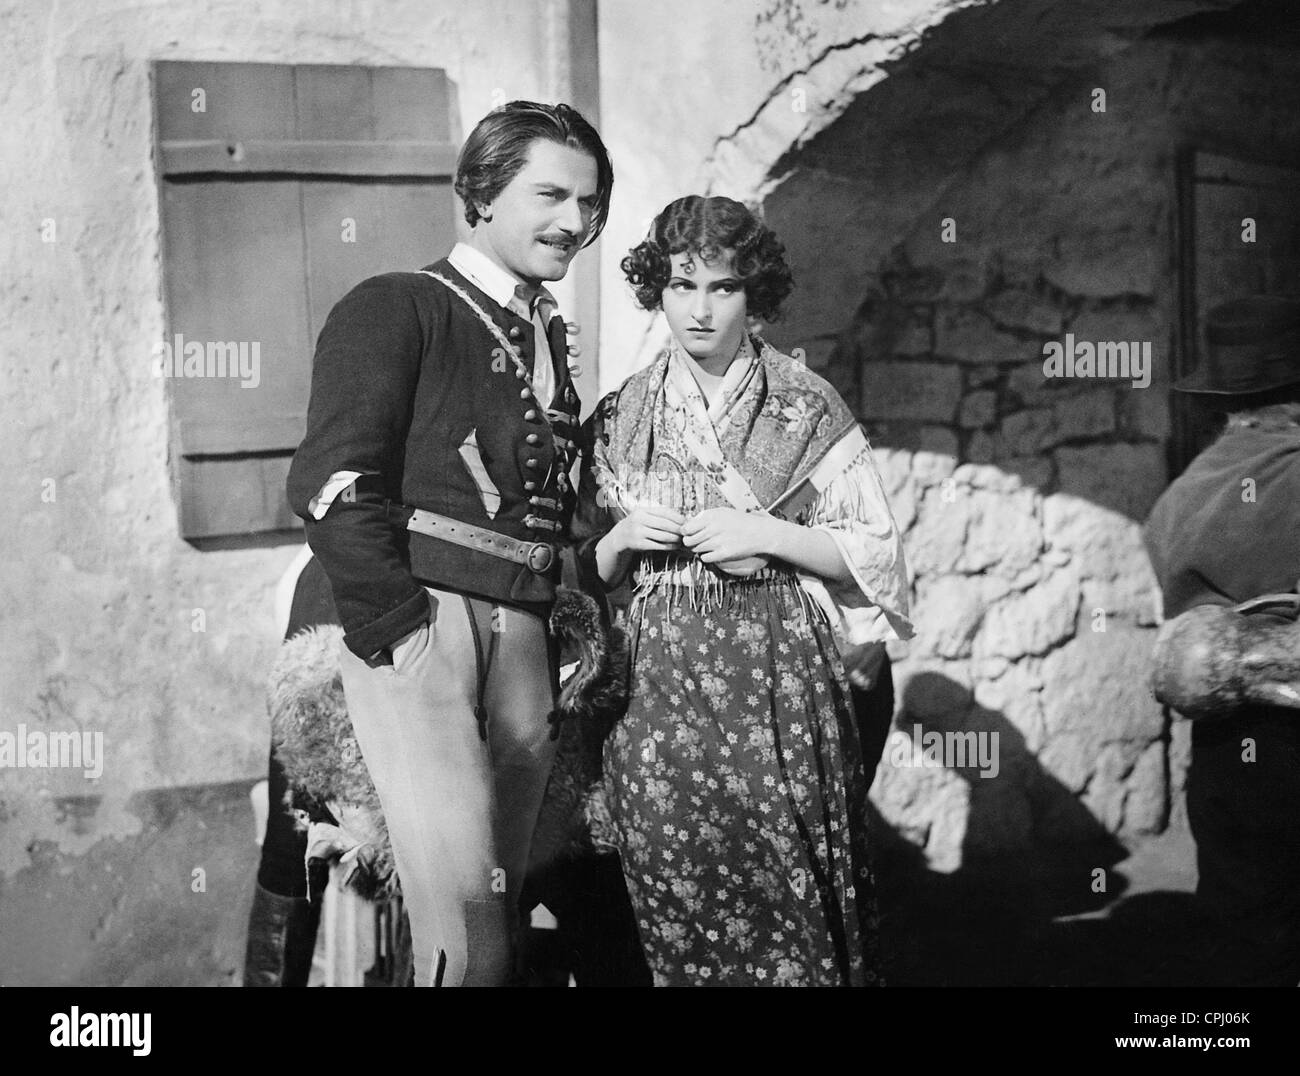 Adolf Wohlbrueck and Hansi Knoteck in 'The Gypsy Baron', 1935 - Stock Image